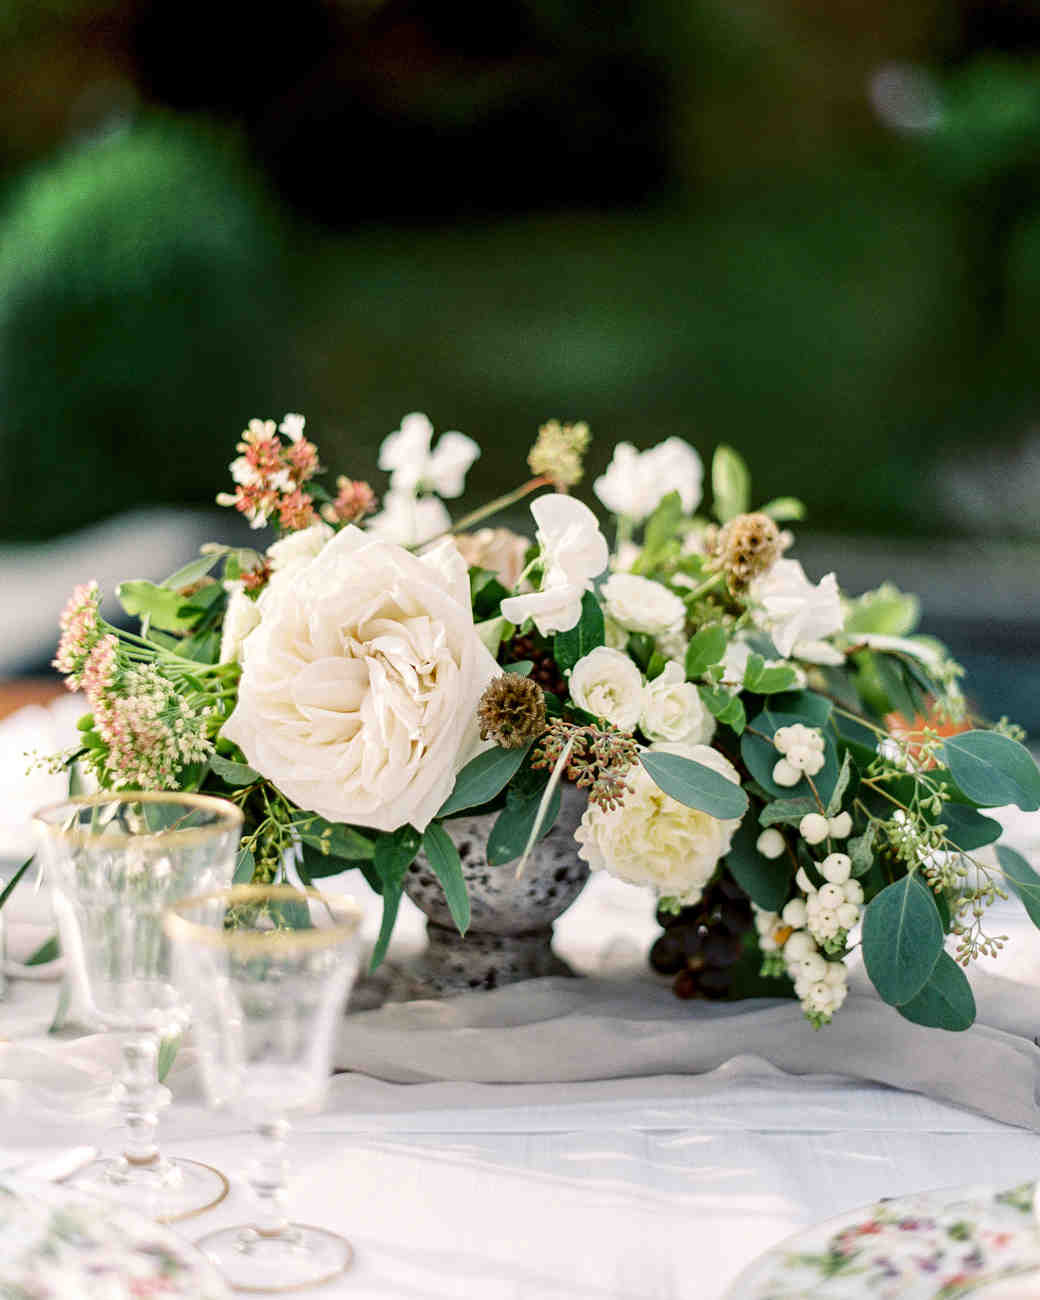 Wedding Flower Arrangements: 51 Rustic Fall Wedding Centerpieces